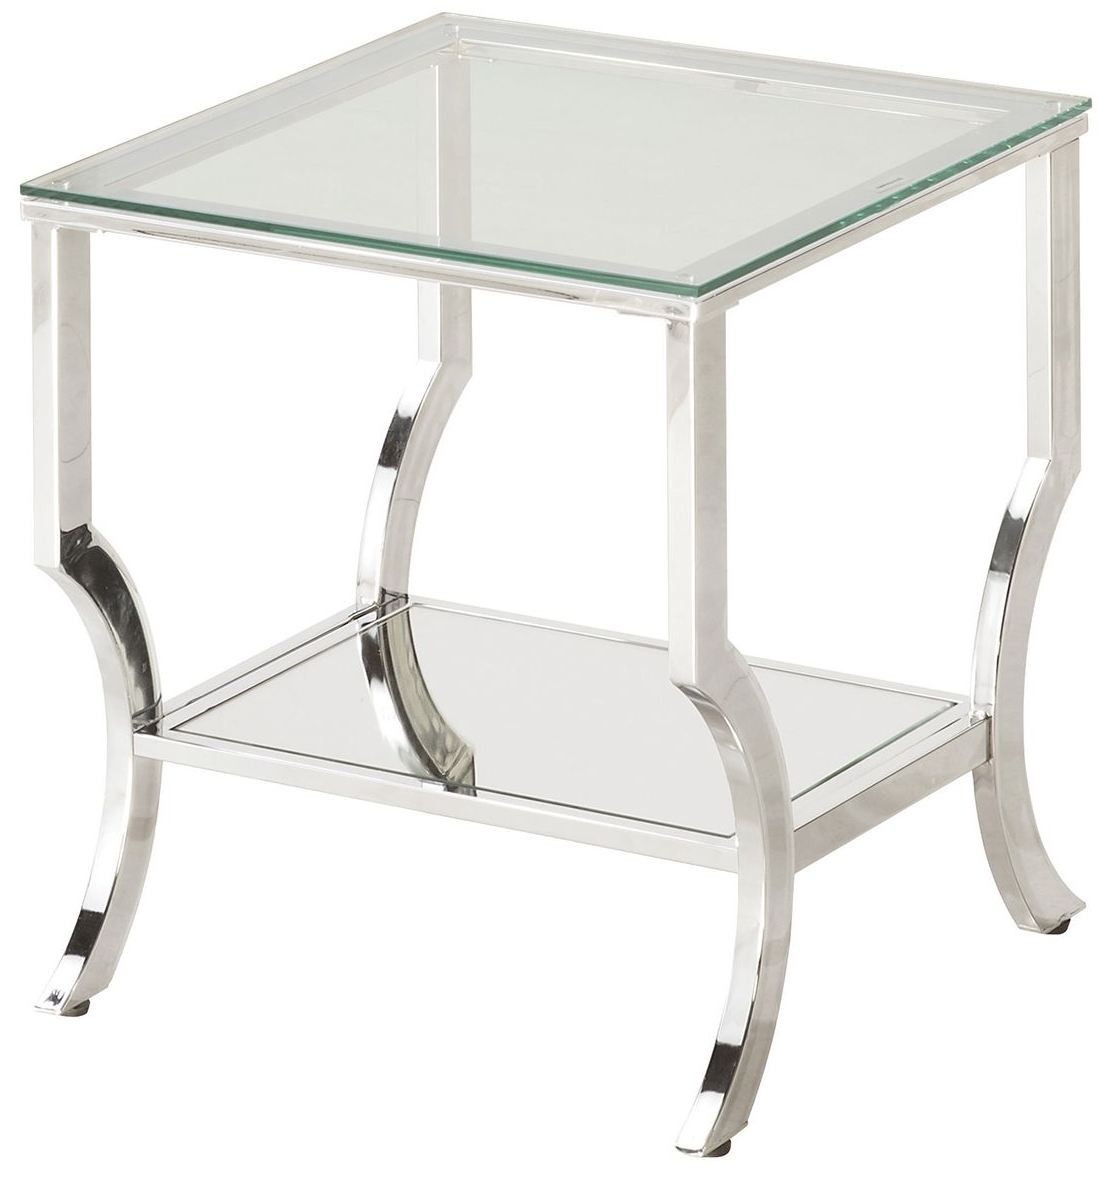 Chrome And Tempered Glass End Table 720337 Coaster Furniture